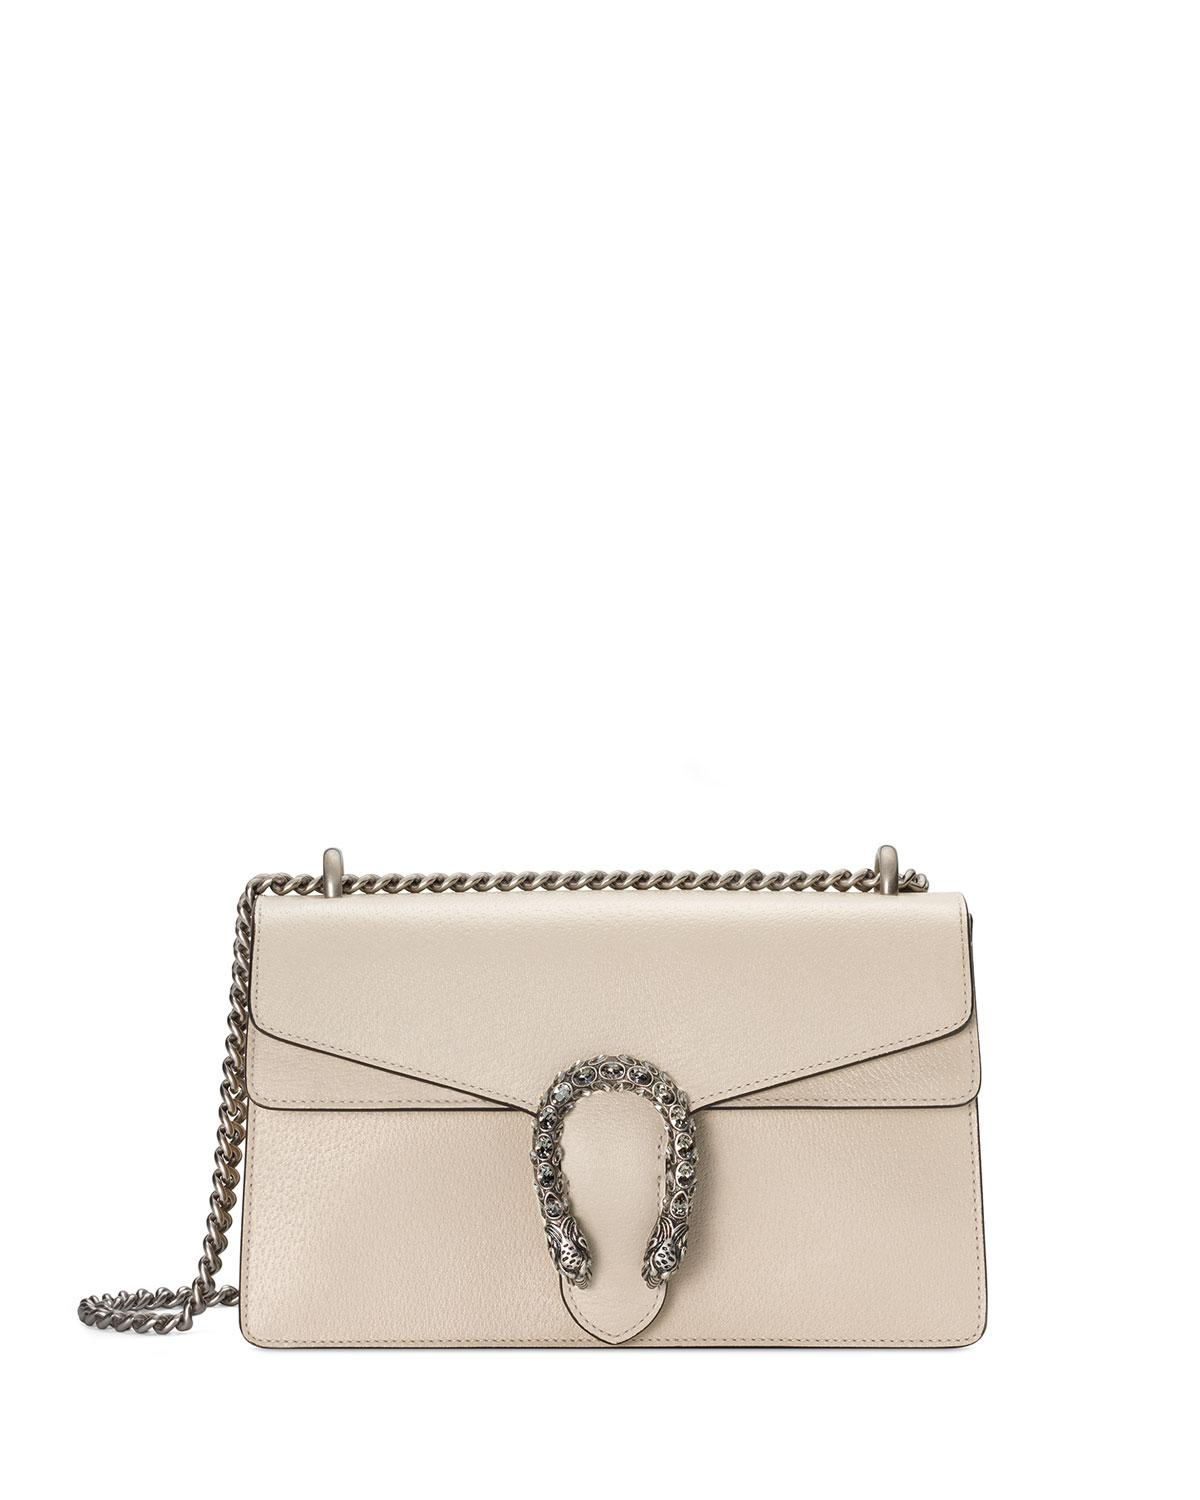 3c7945c2d29 Lyst - Gucci Dionysus Small Shoulder Bag in White